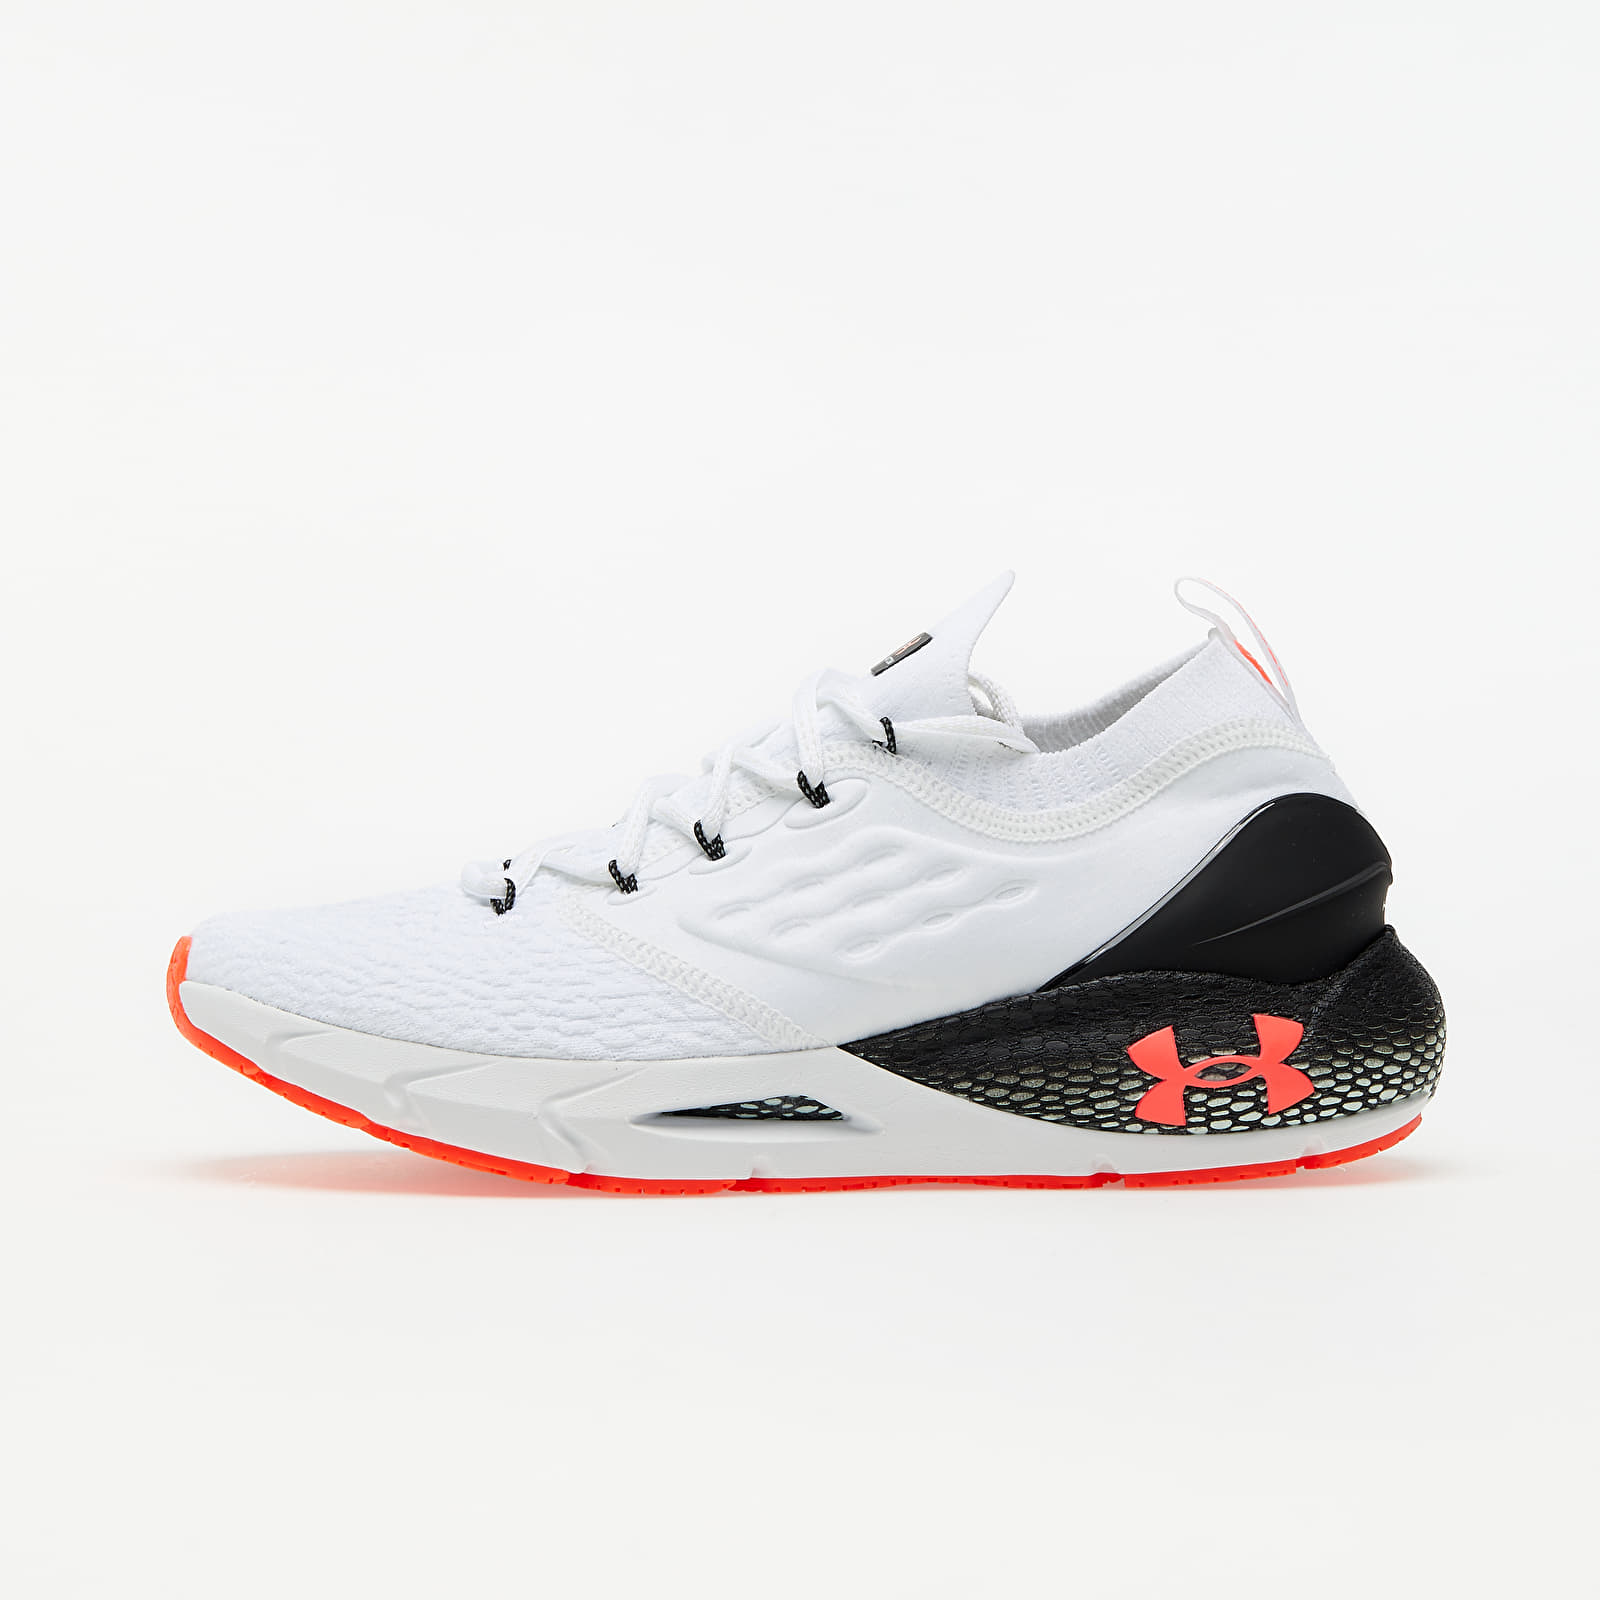 Under Armour HOVR Phantom 2 Runanywr White/ Black 3023625-100